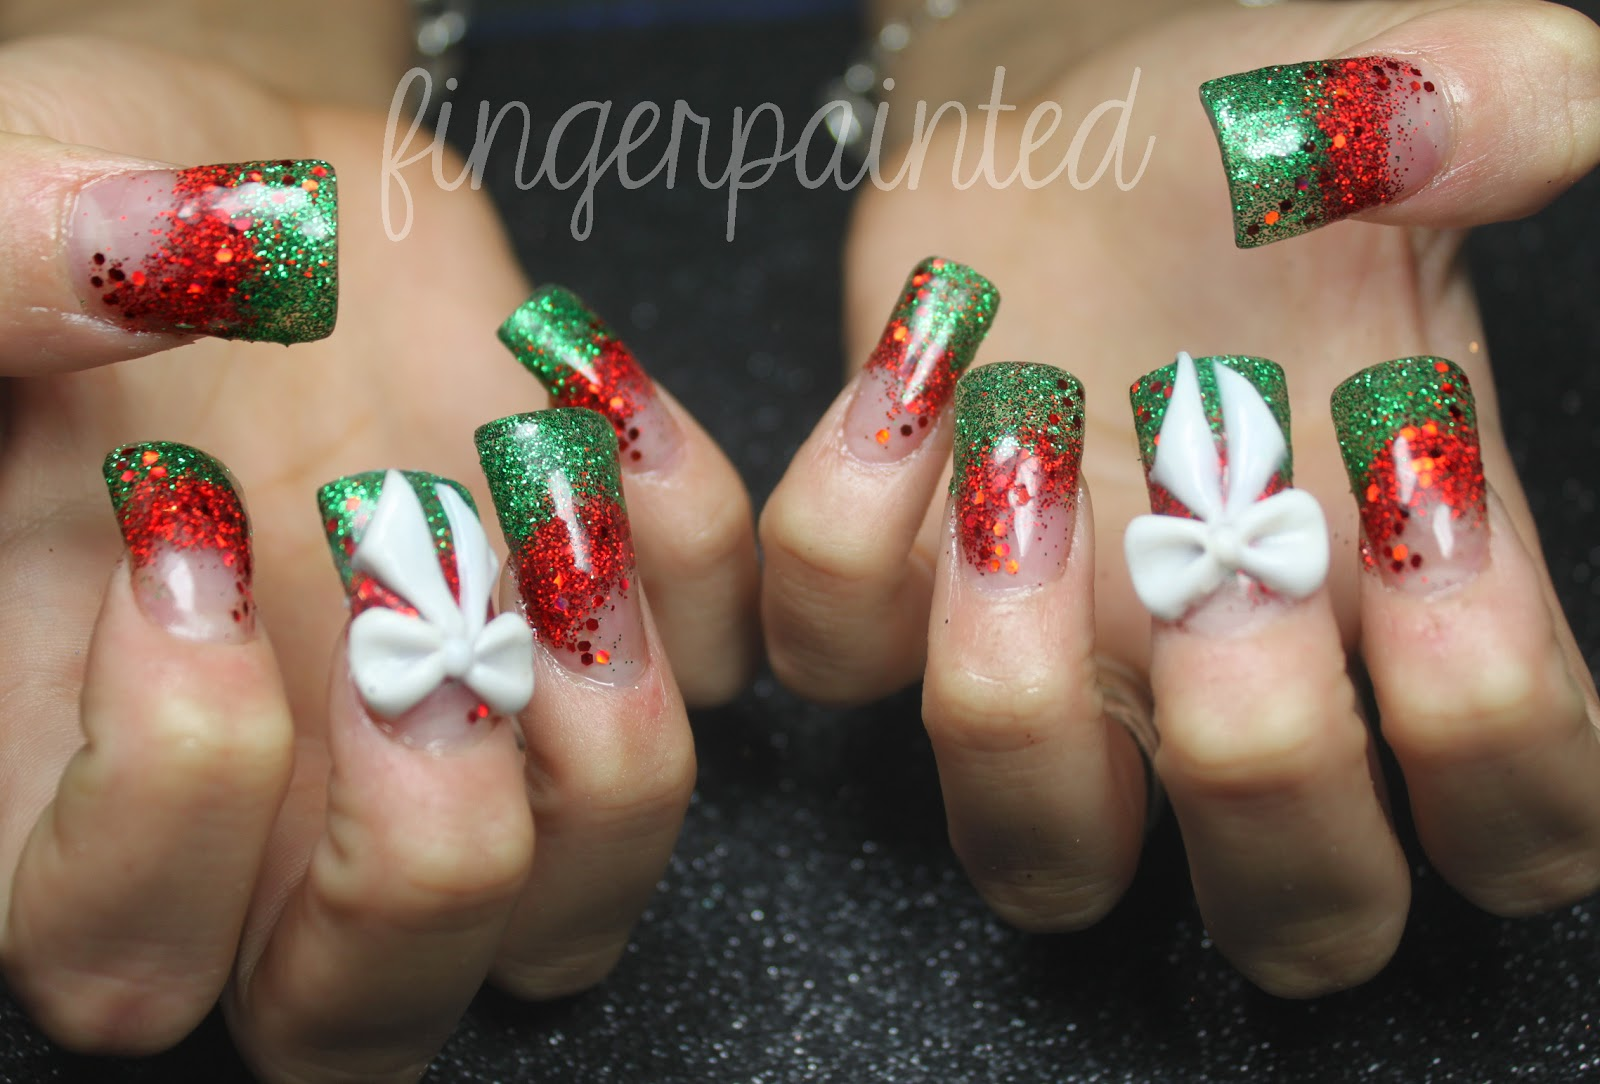 Finger Painted The One With All Christmas Decorations